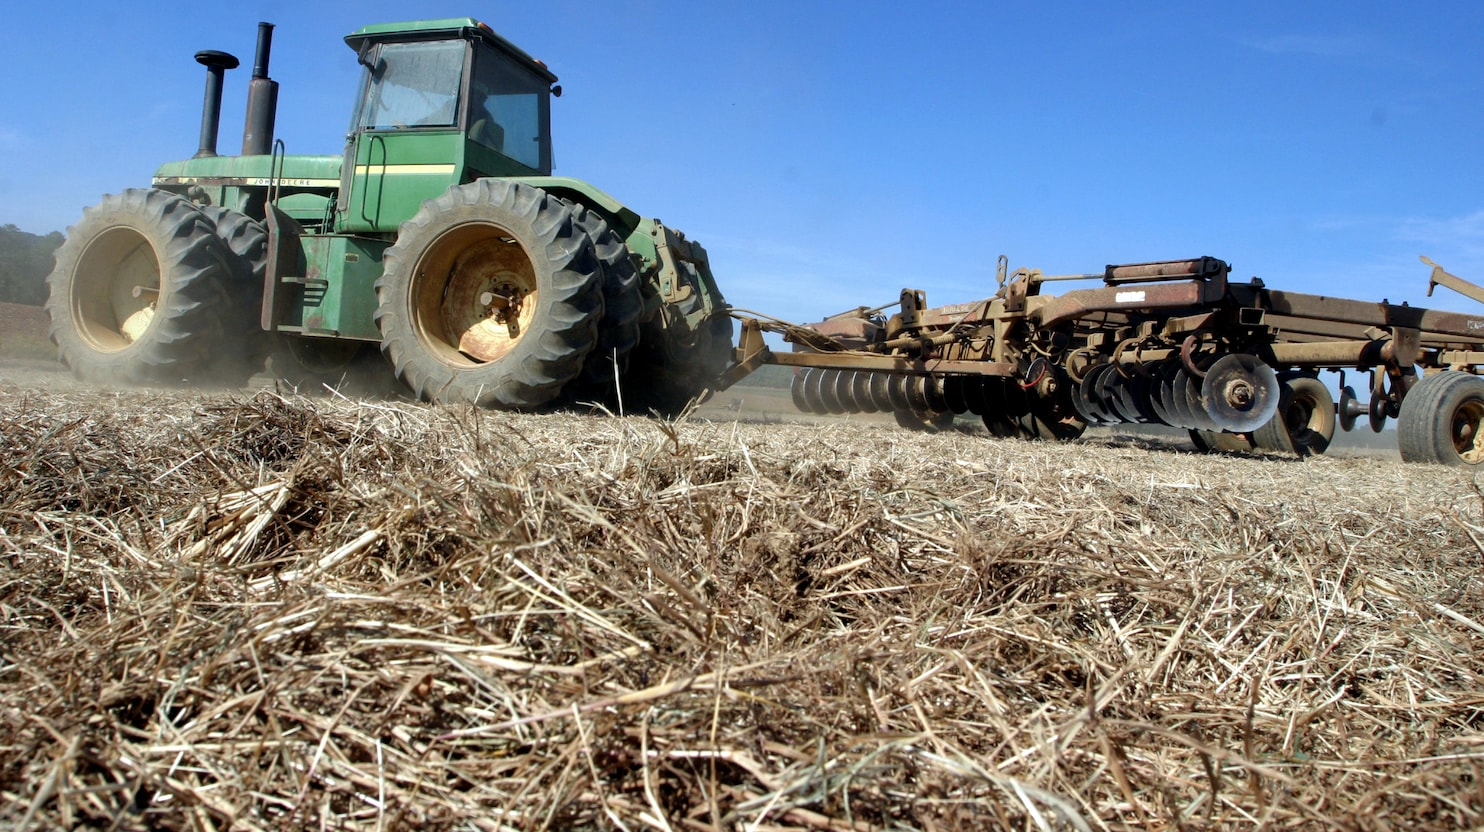 medium resolution of eight ideas for improving ag policy to benefit farmers and the planet the washington post